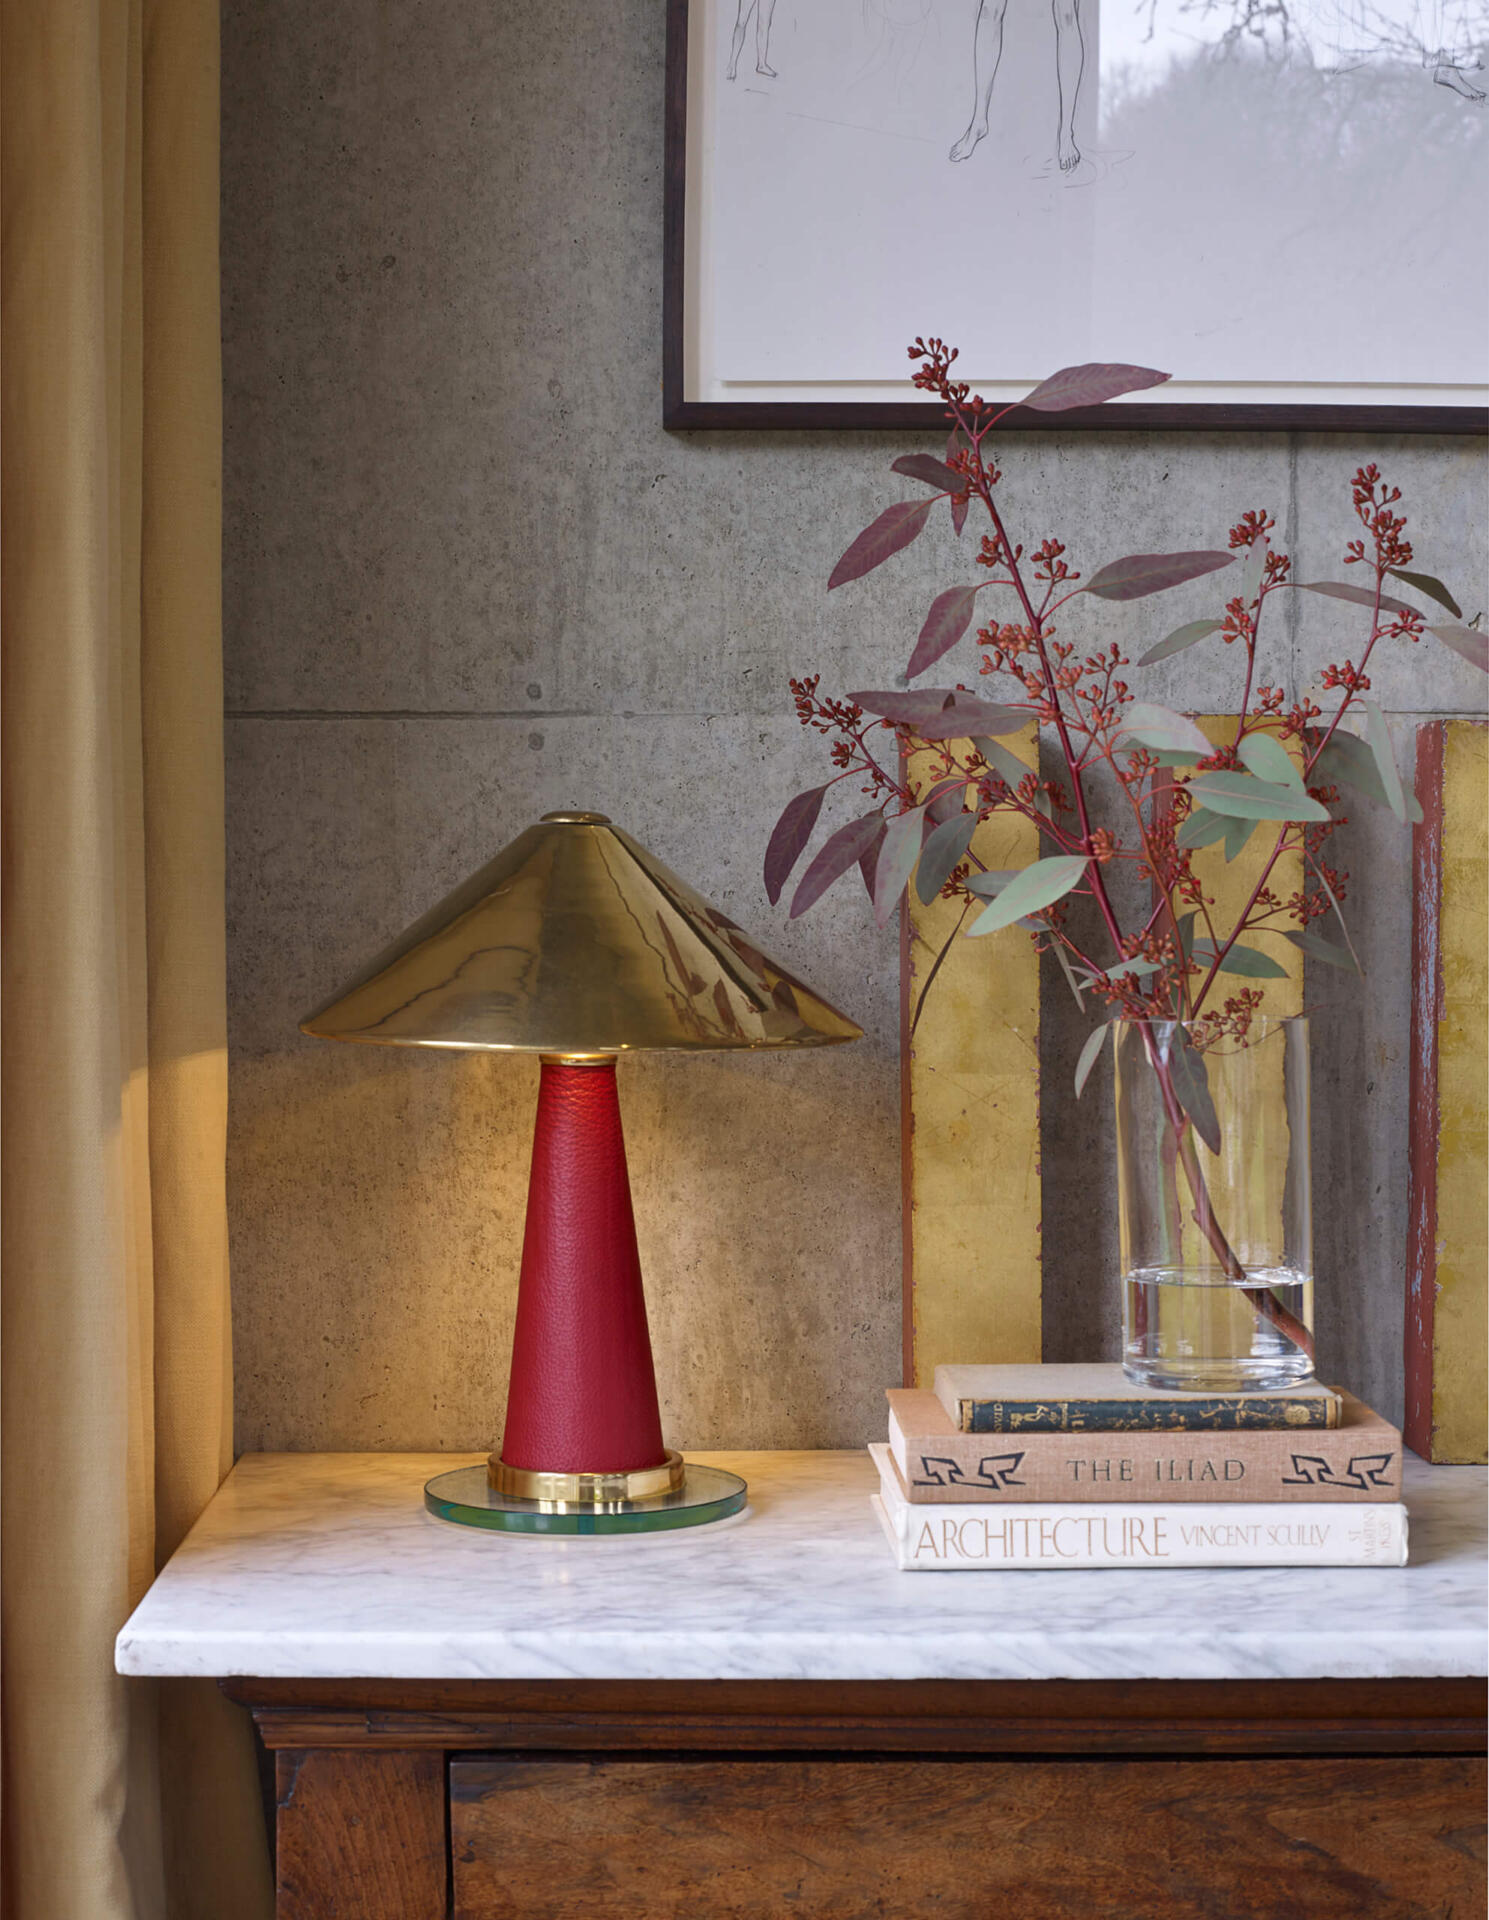 The Shitake table lamp - a leather wrapped light with a brass spun shade